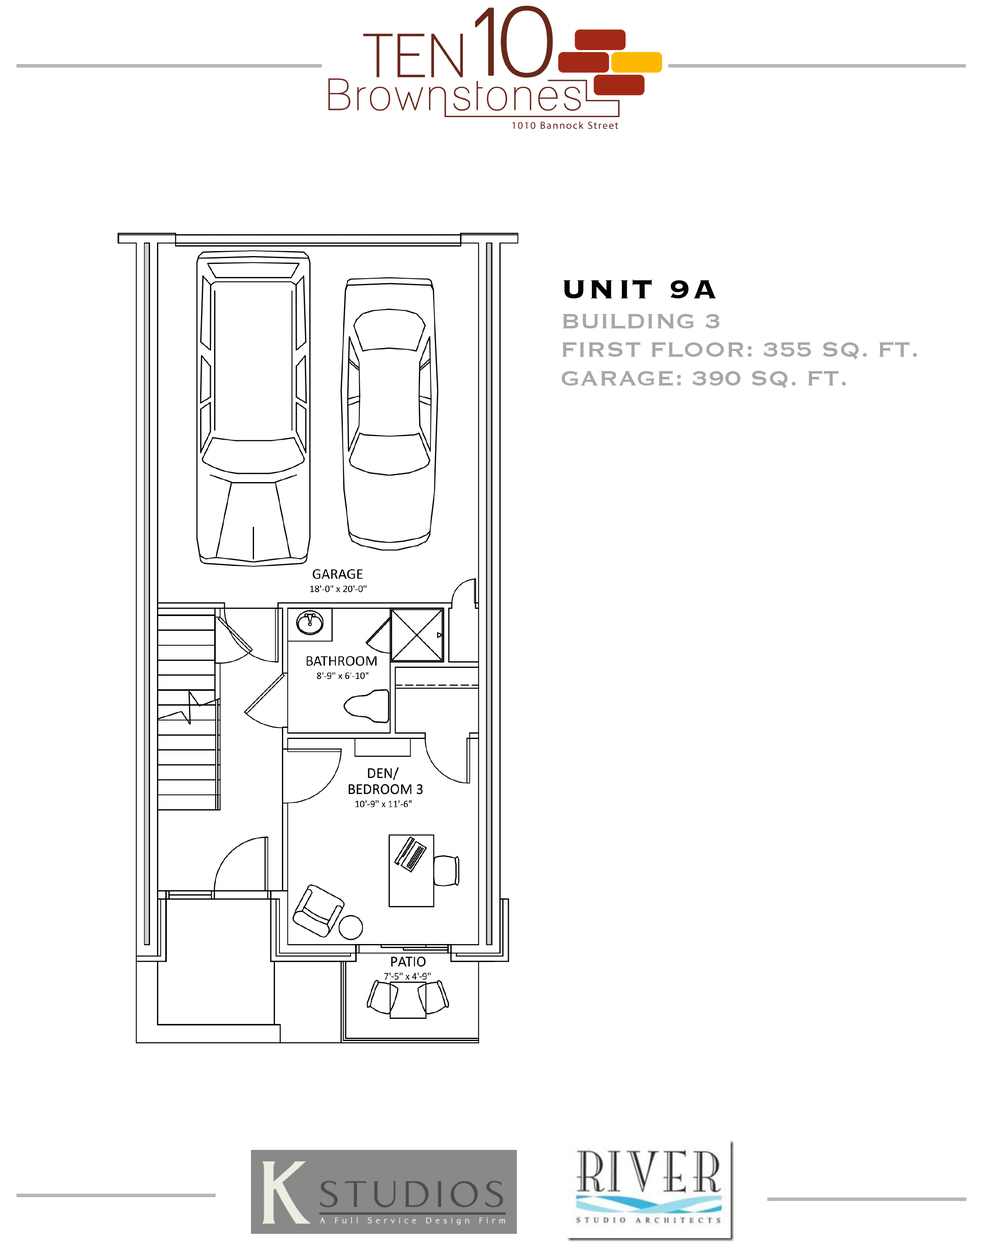 Click image to view & download Unit 9A floor plan